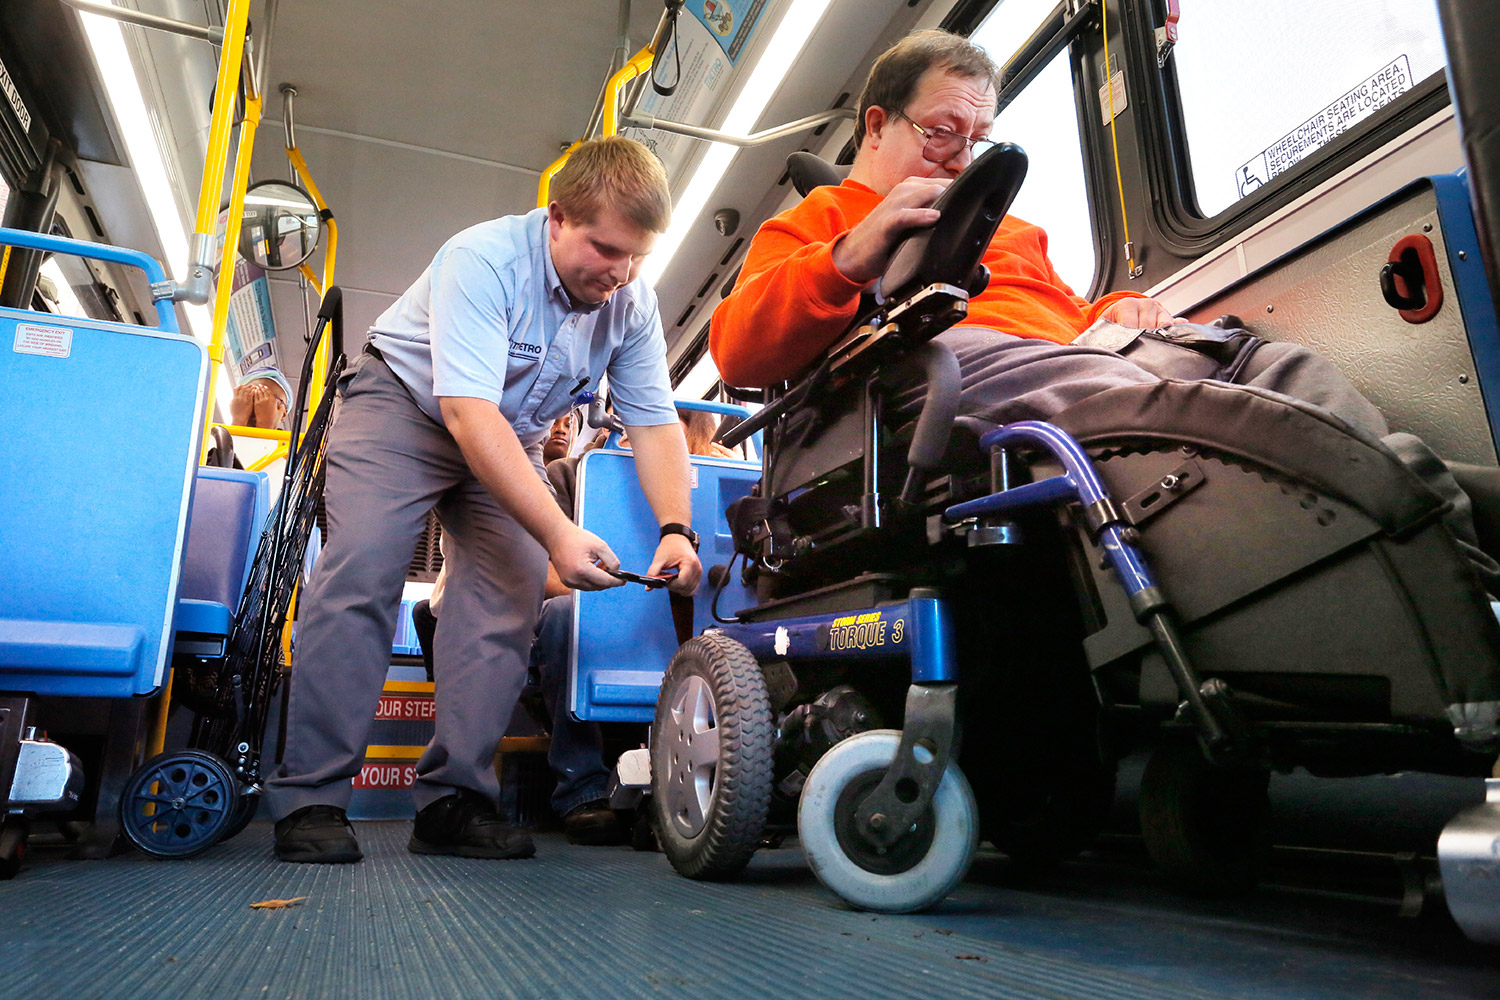 Metro bus driver Mark Shapp fastens a strap to secure Joe Kilbride's wheelchair while driving route 9B in Portland.